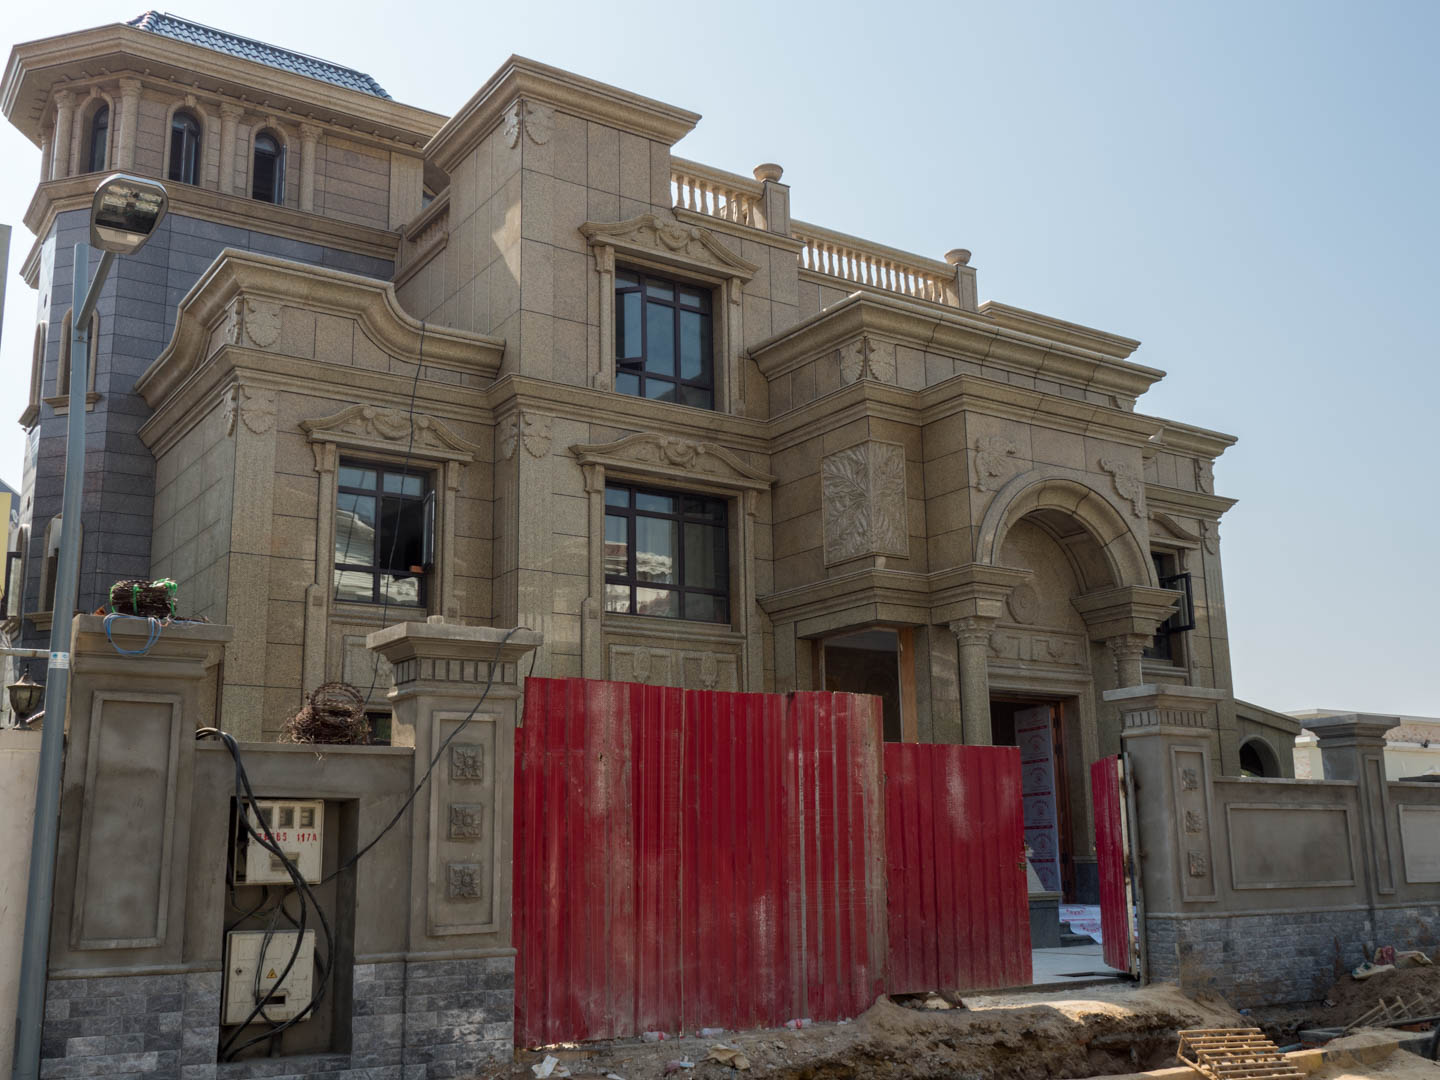 large stone house being built in Koh Pich, Phnom Penh